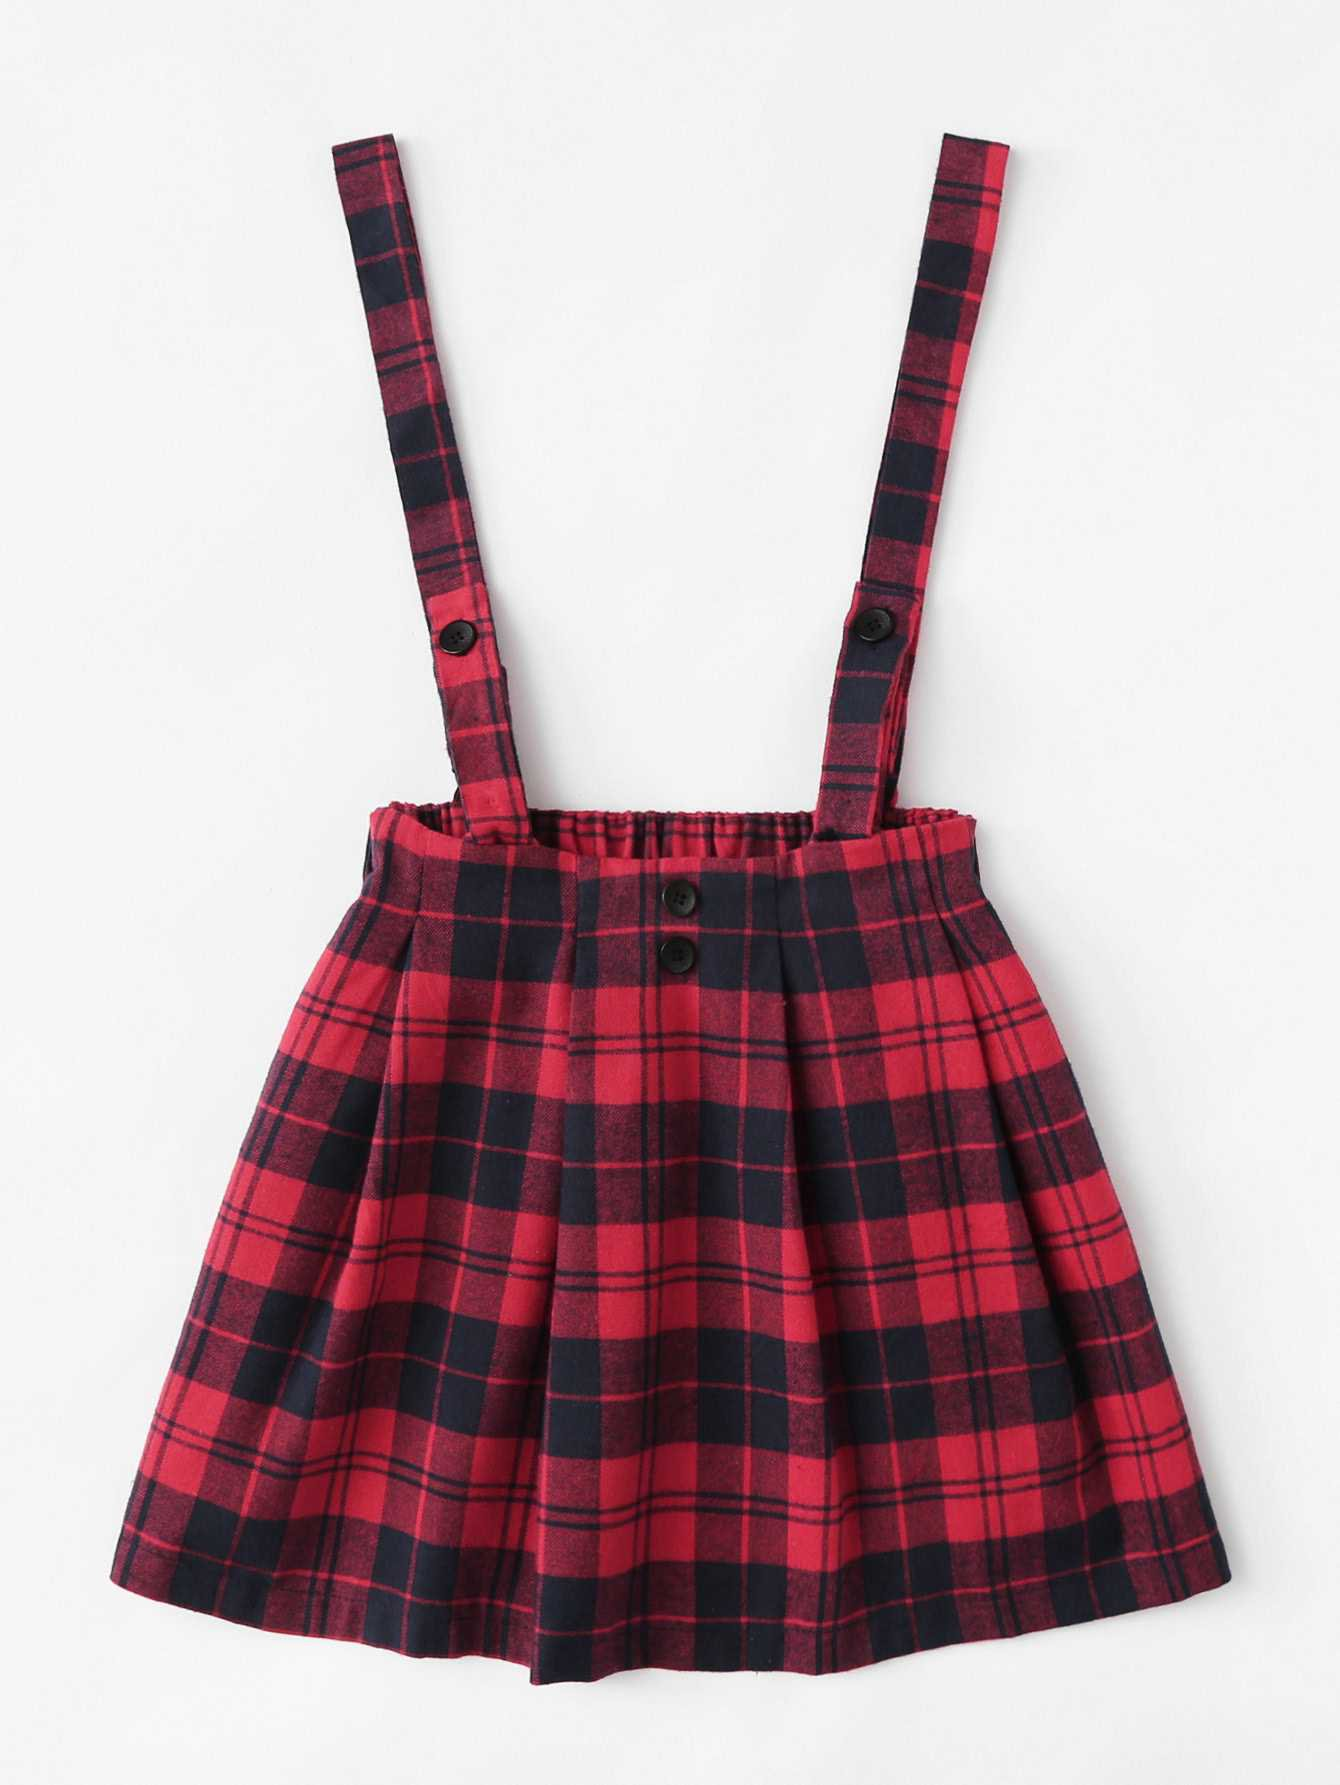 Checked Pleated Pinafore Skirt - romwe